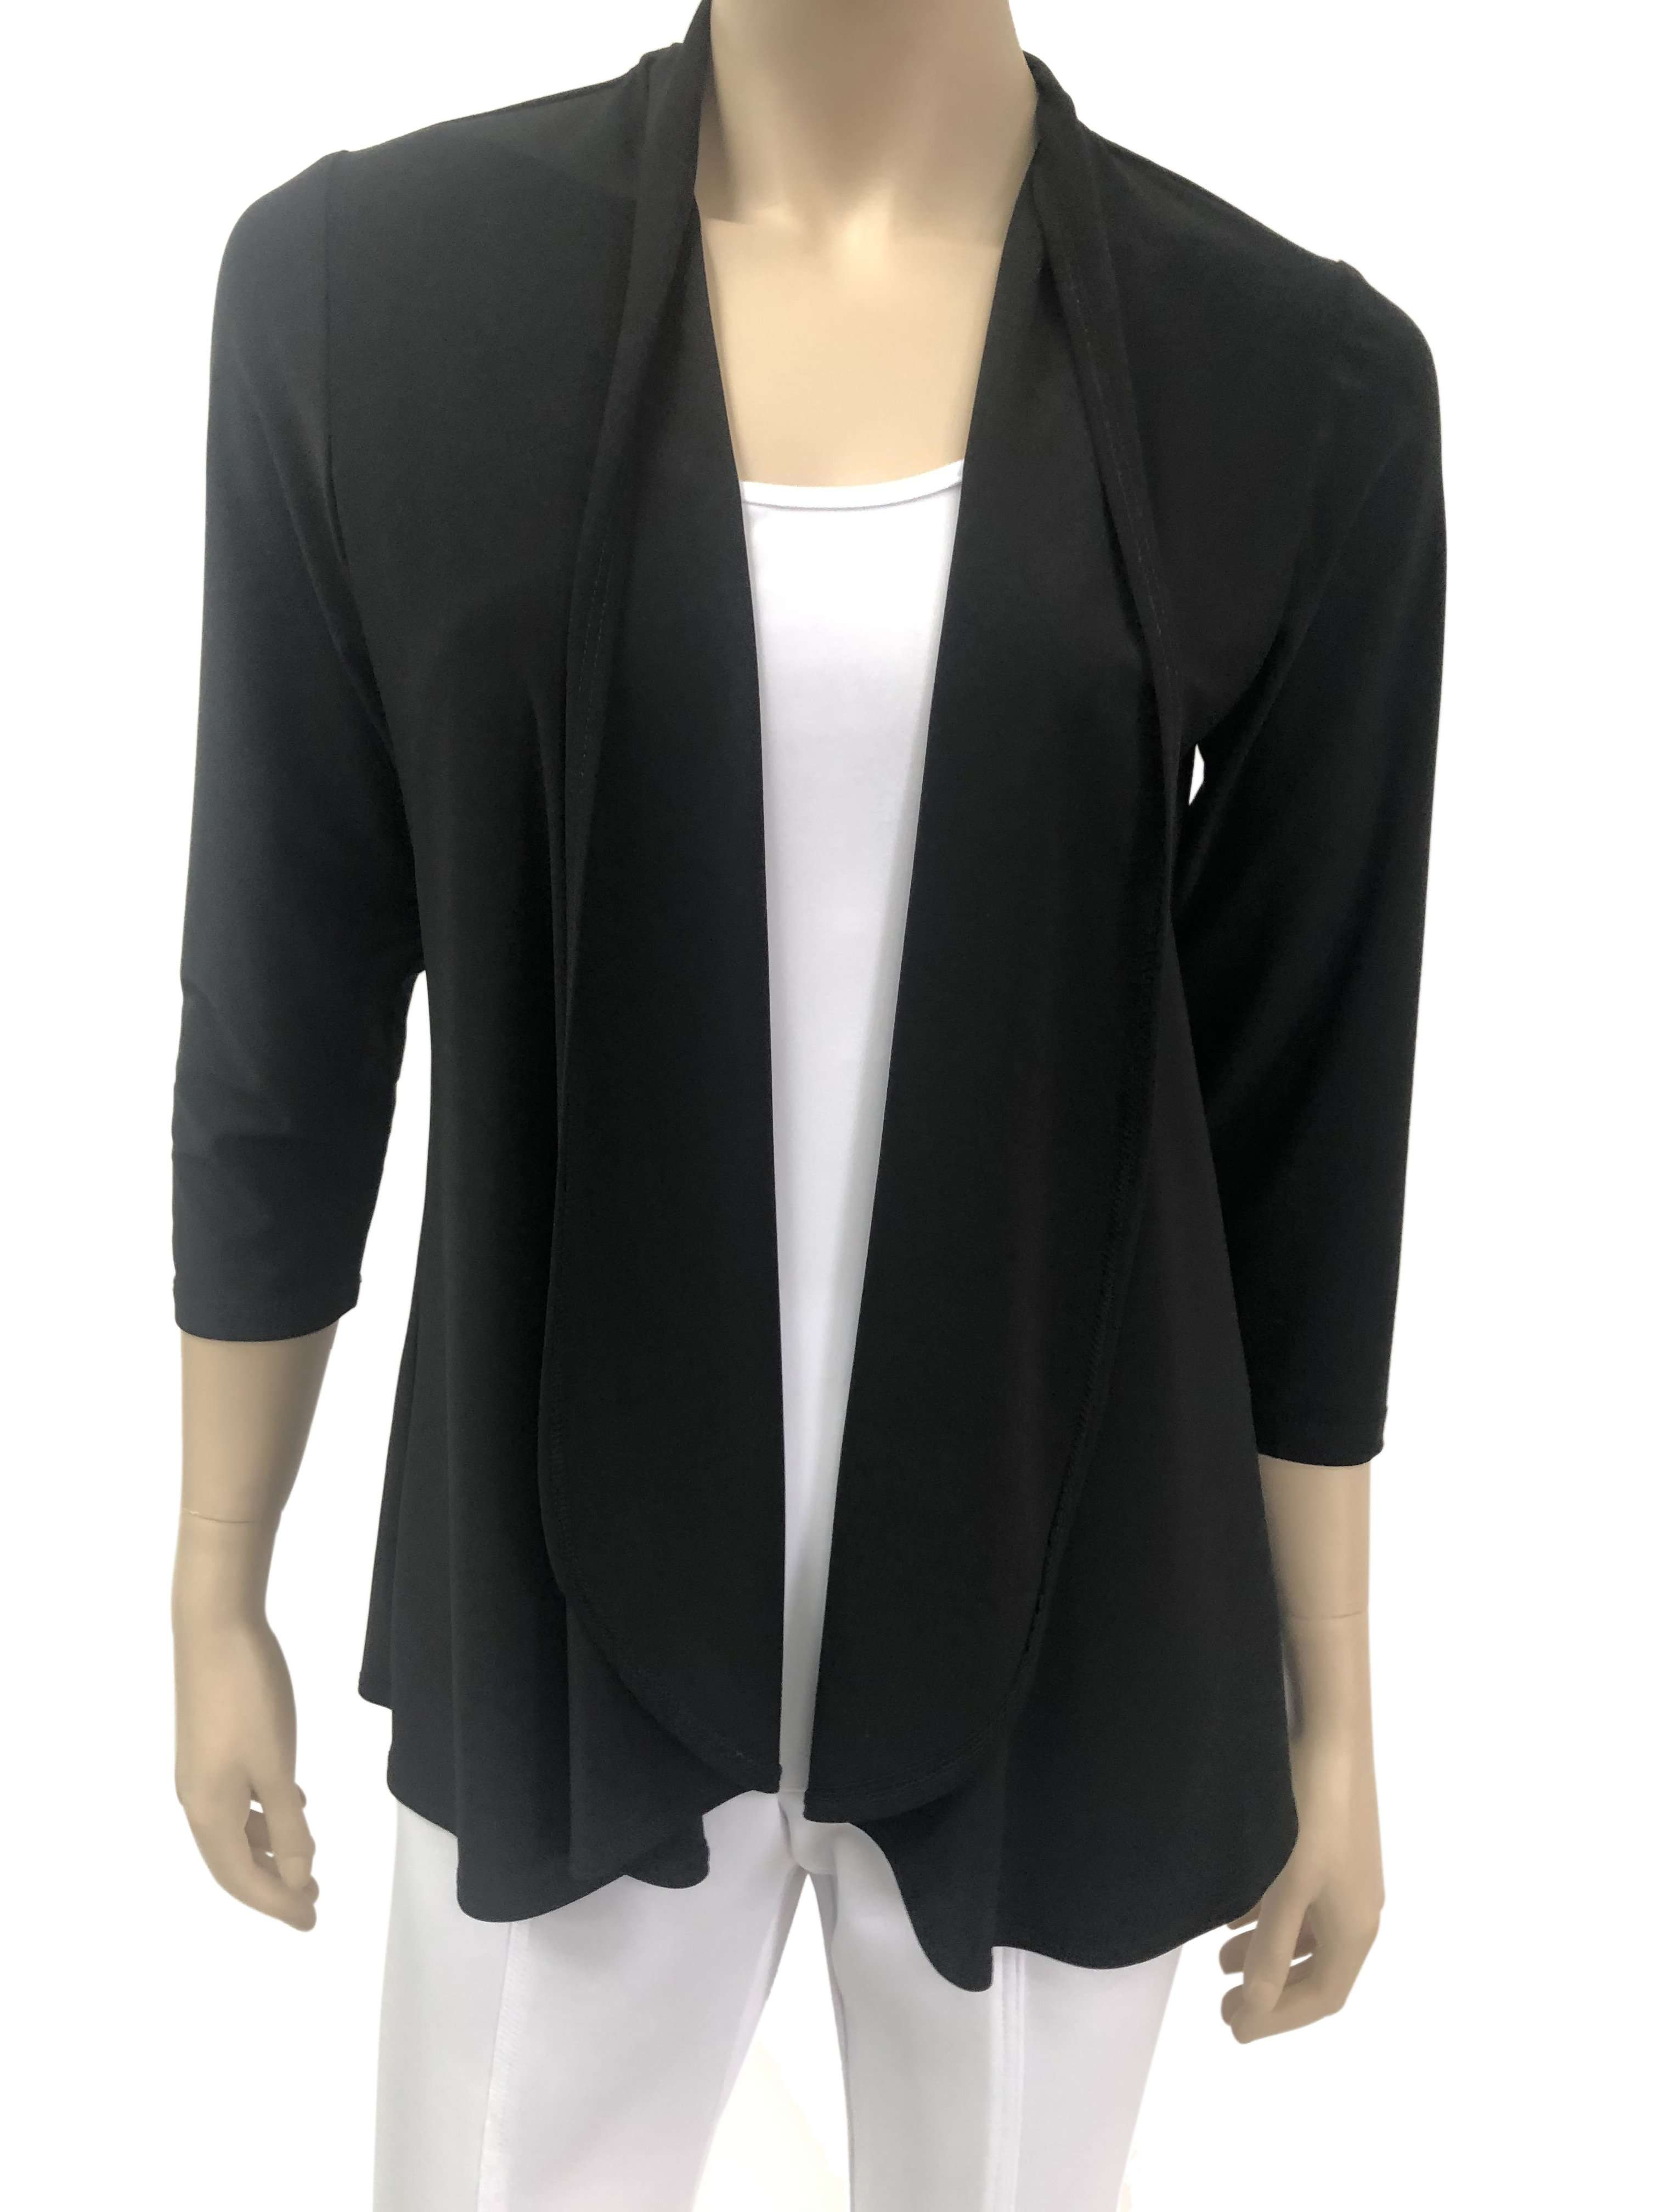 Women's Black Cardigan - Made In Canada - Now 50 Off - Shop Local - Yvonne Marie - Yvonne Marie